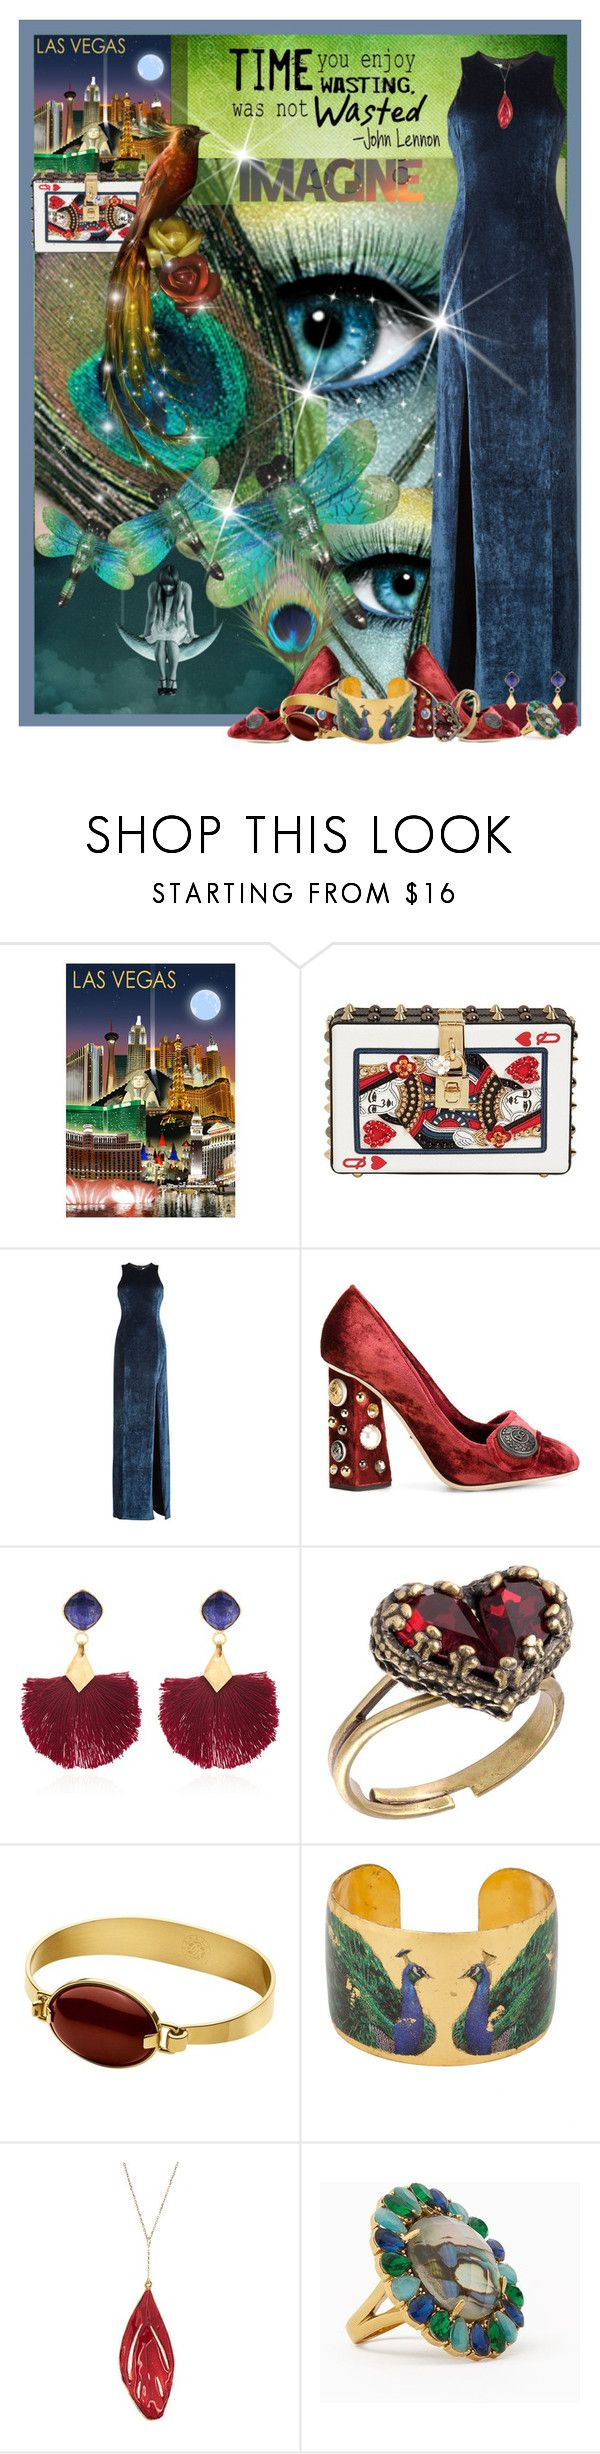 """""""It's Not A Question Of Art Or Fashion - It's Vegas, So It's Anything You Want It To Be"""" by sharee64 ❤ liked on Polyvore featuring Dolce&Gabbana, Galvan, Ottoman Hands, Michal Negrin, Dyrberg/Kern, Évocateur and Kate Spade"""